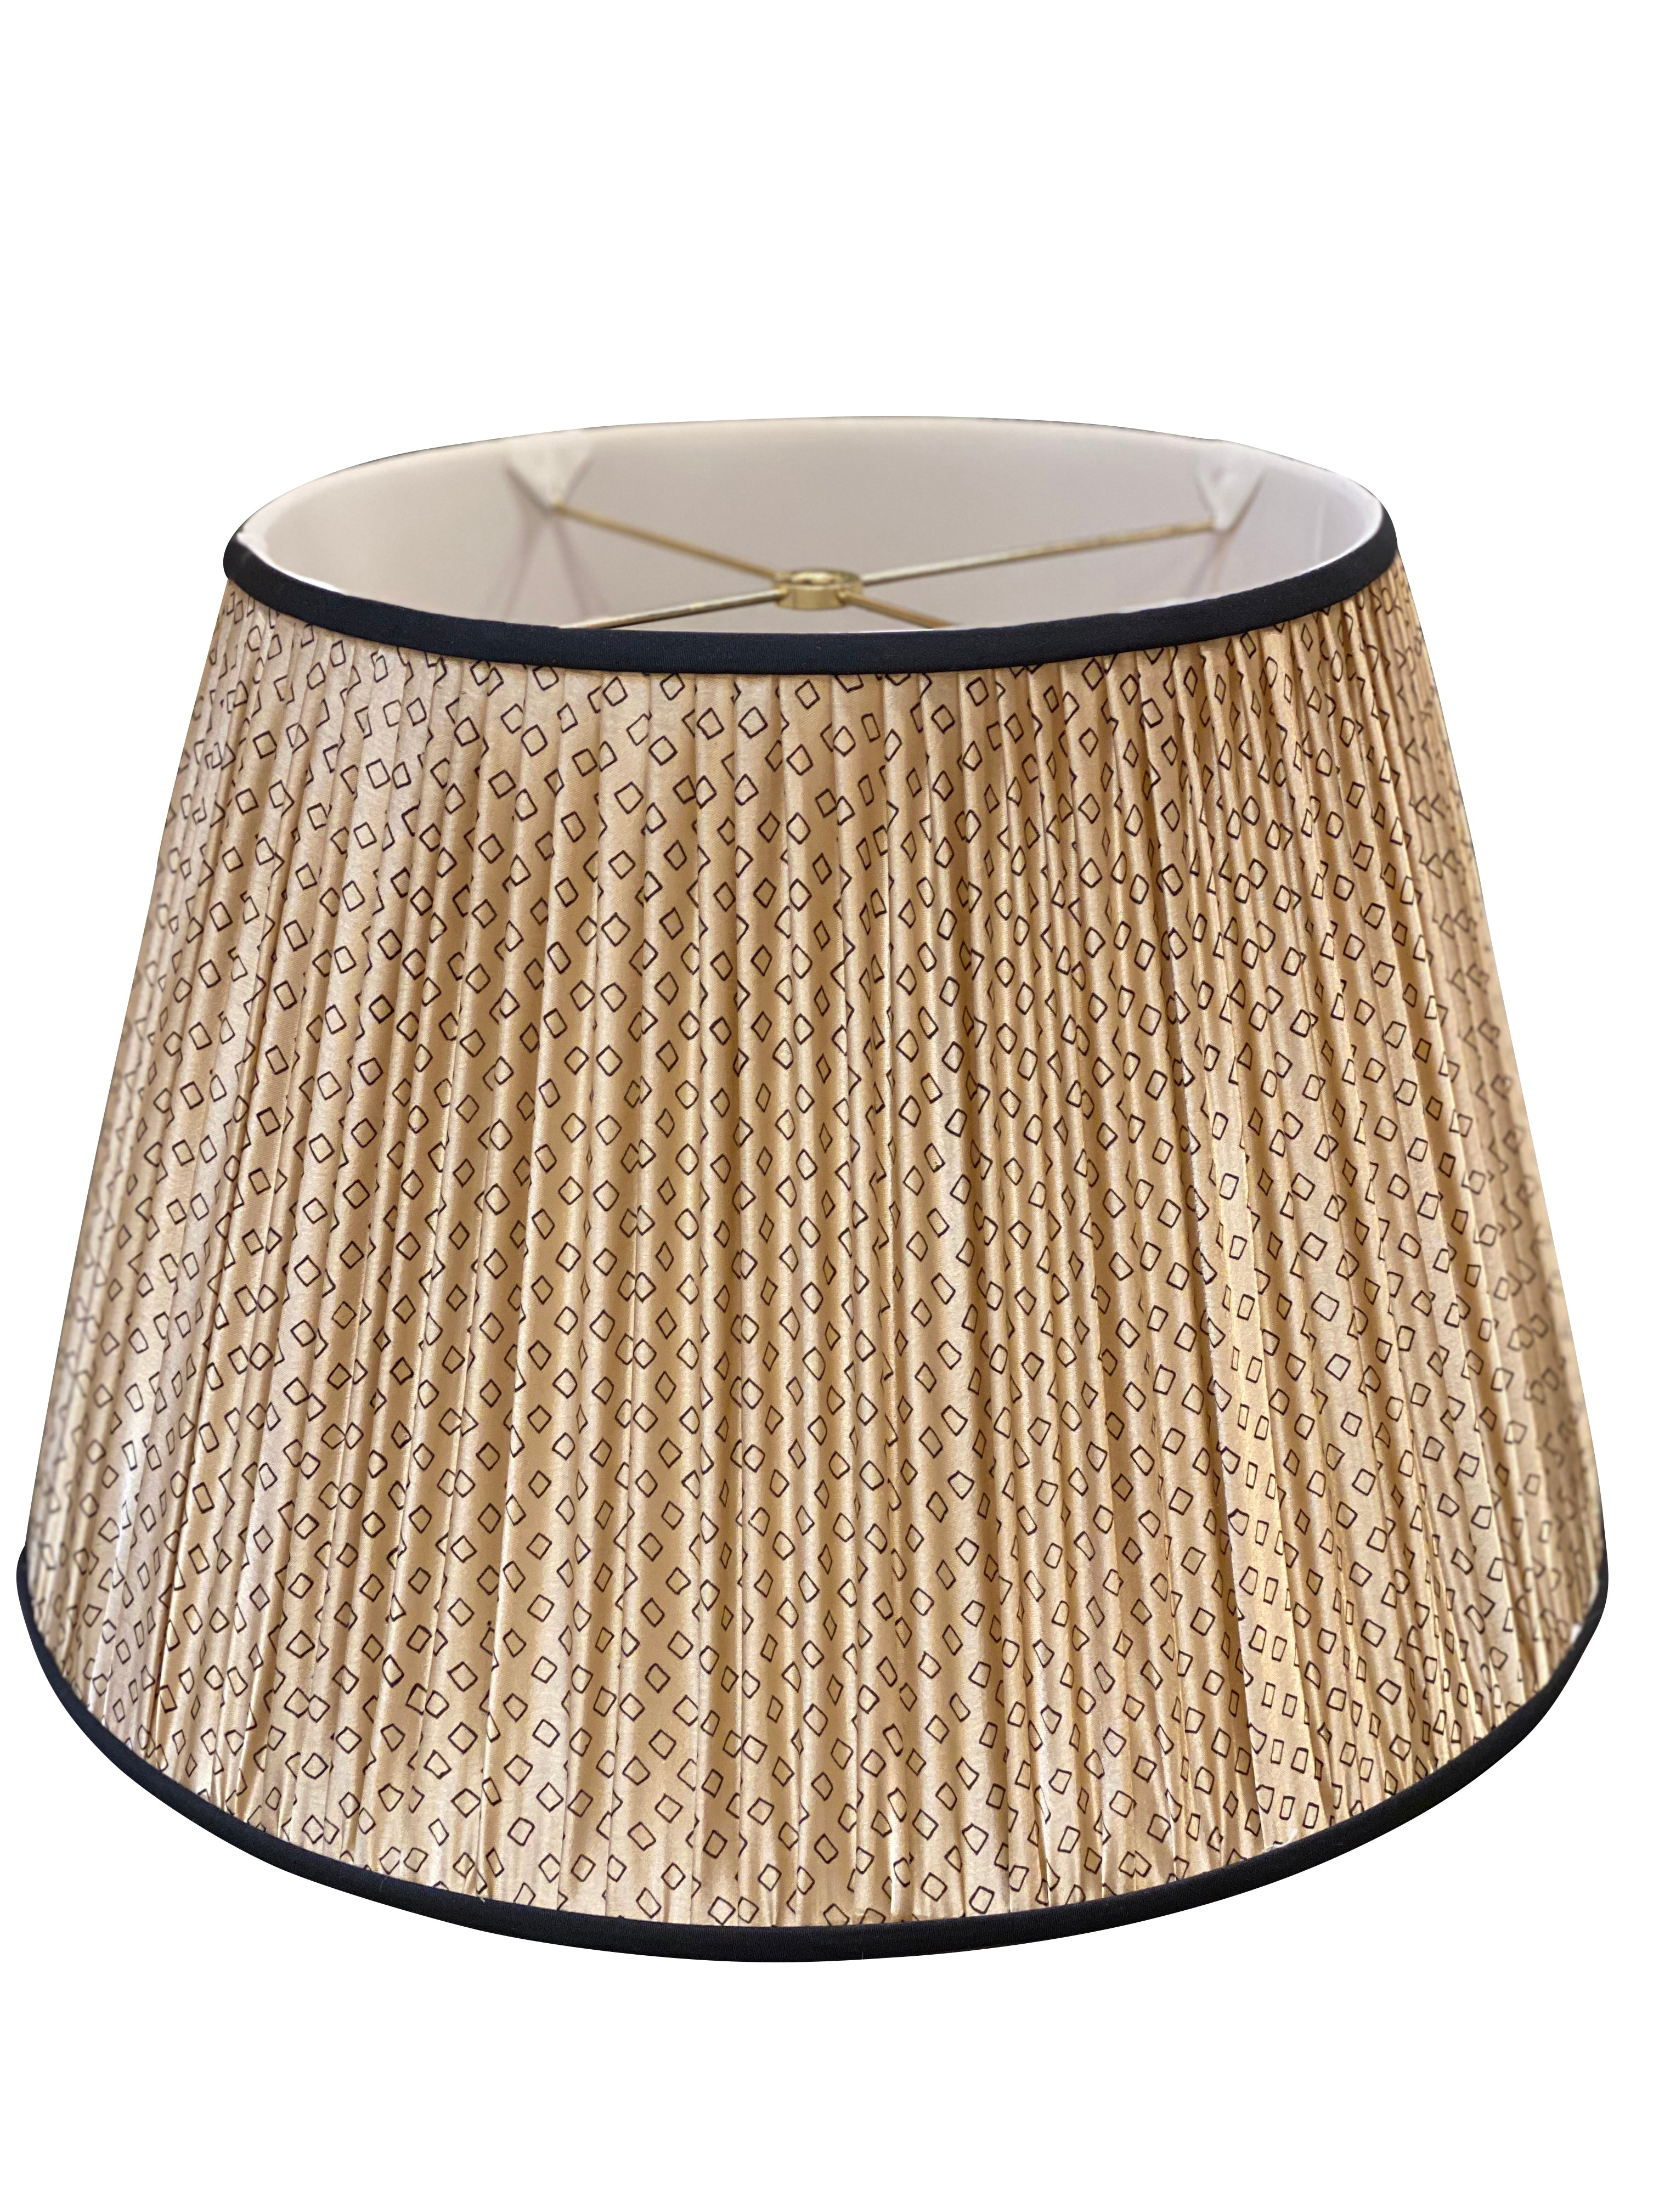 "Tan & Black Diamonds w/ Black Trim, Gathered Empire - 18"" Lampshade"